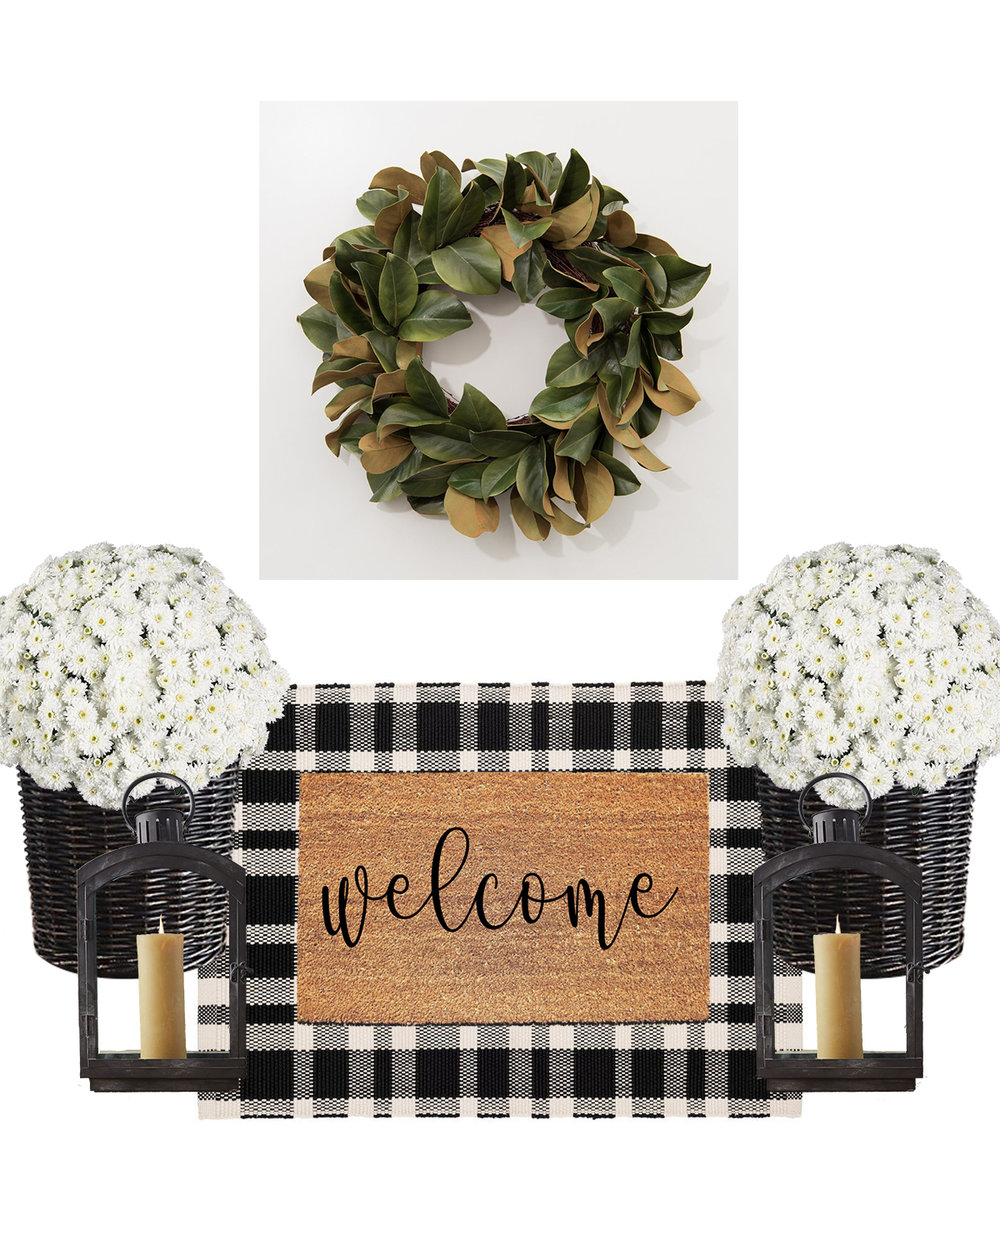 wreath  |  area rug  |  doormat  |  basket planters  |  lanterns  |  mums image